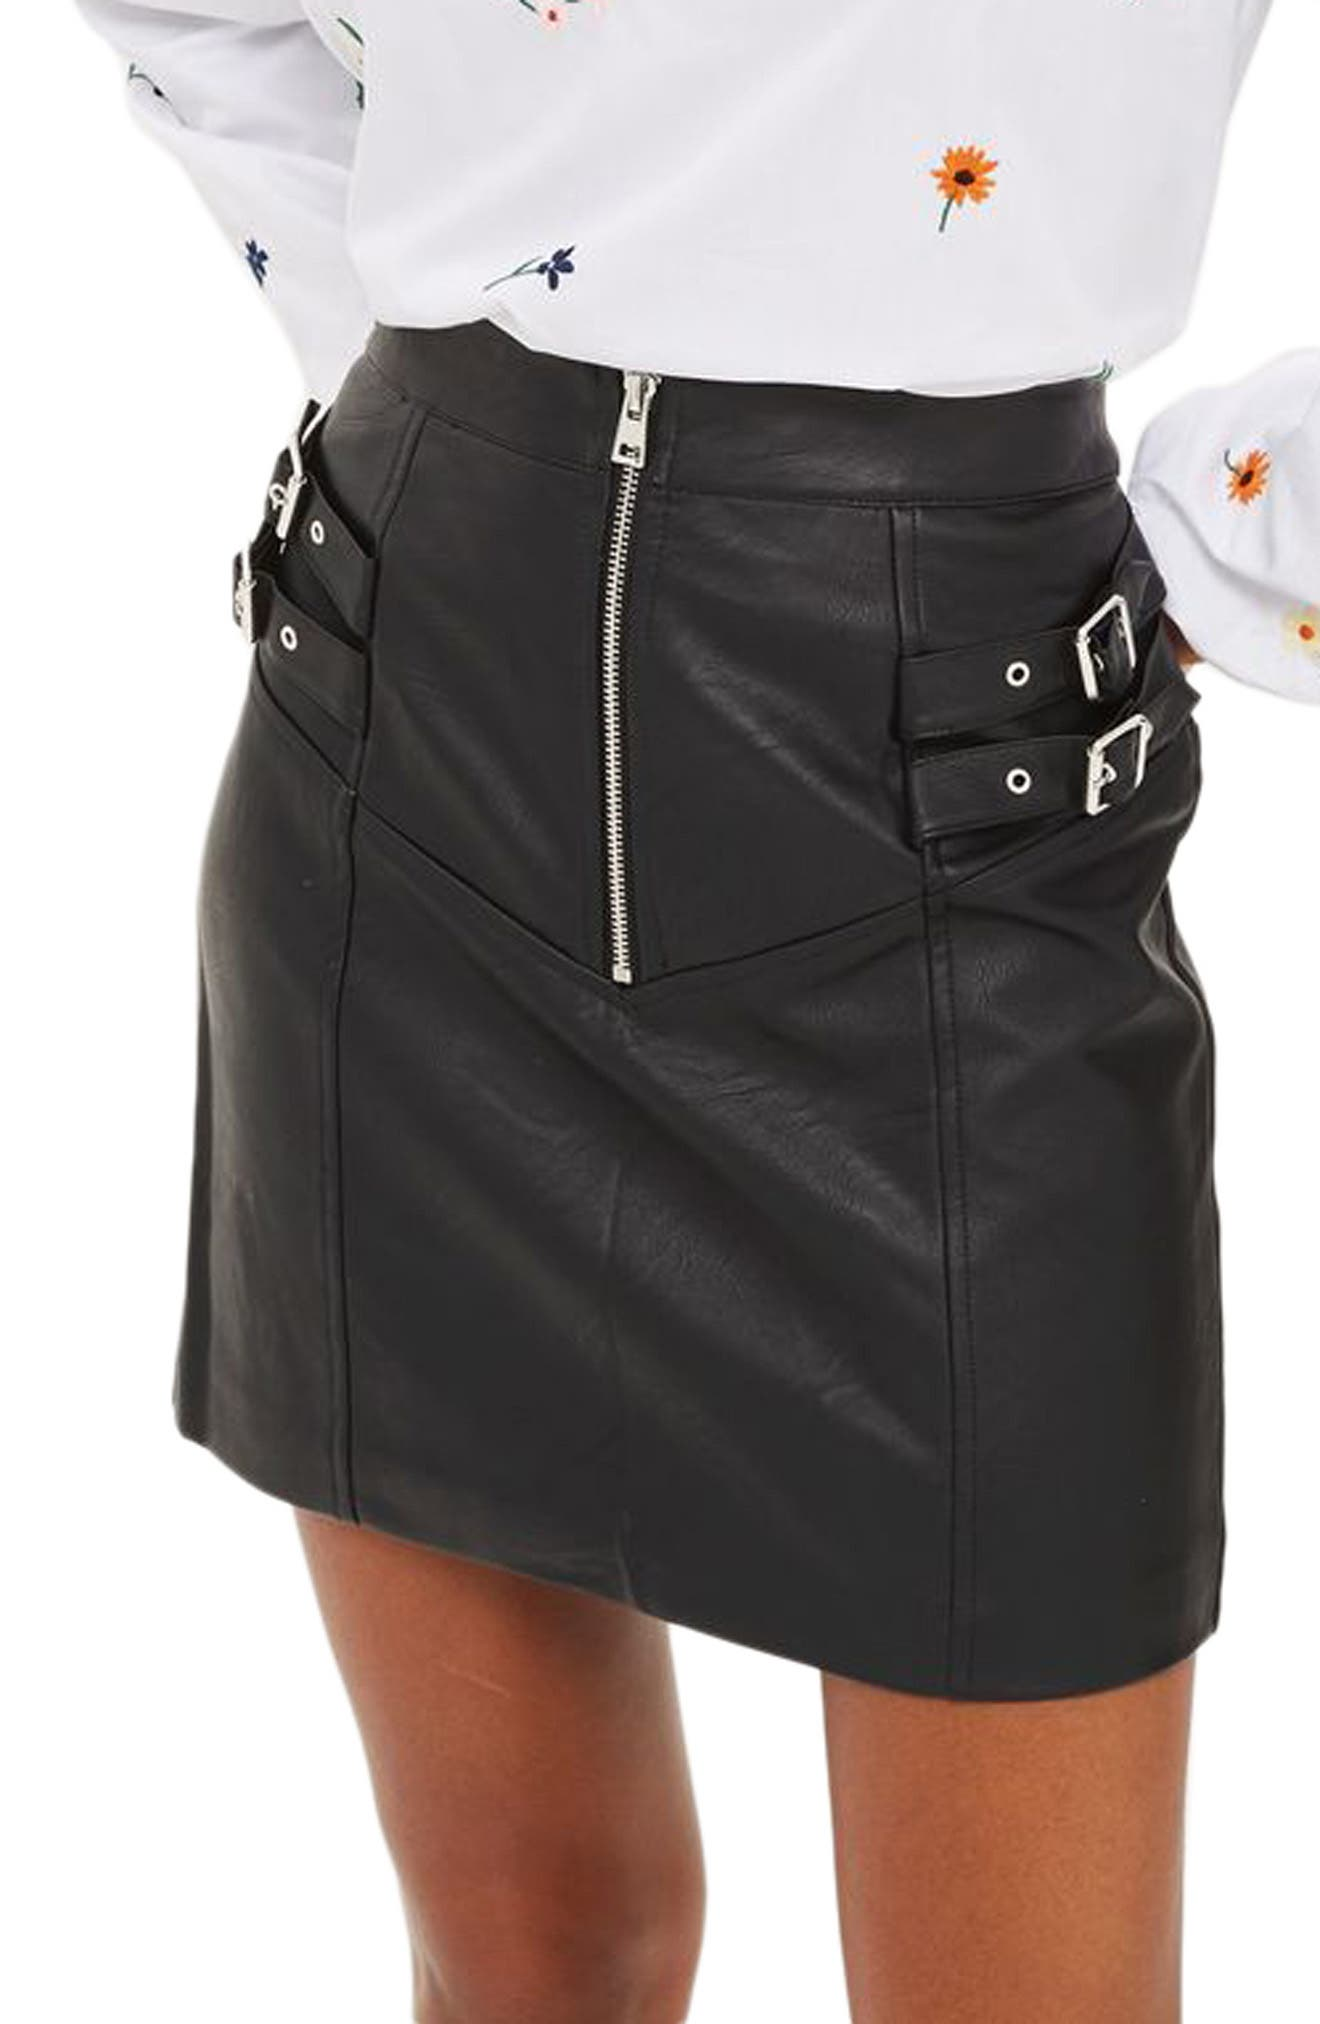 Topshop Double Buckle Faux Leather Miniskirt